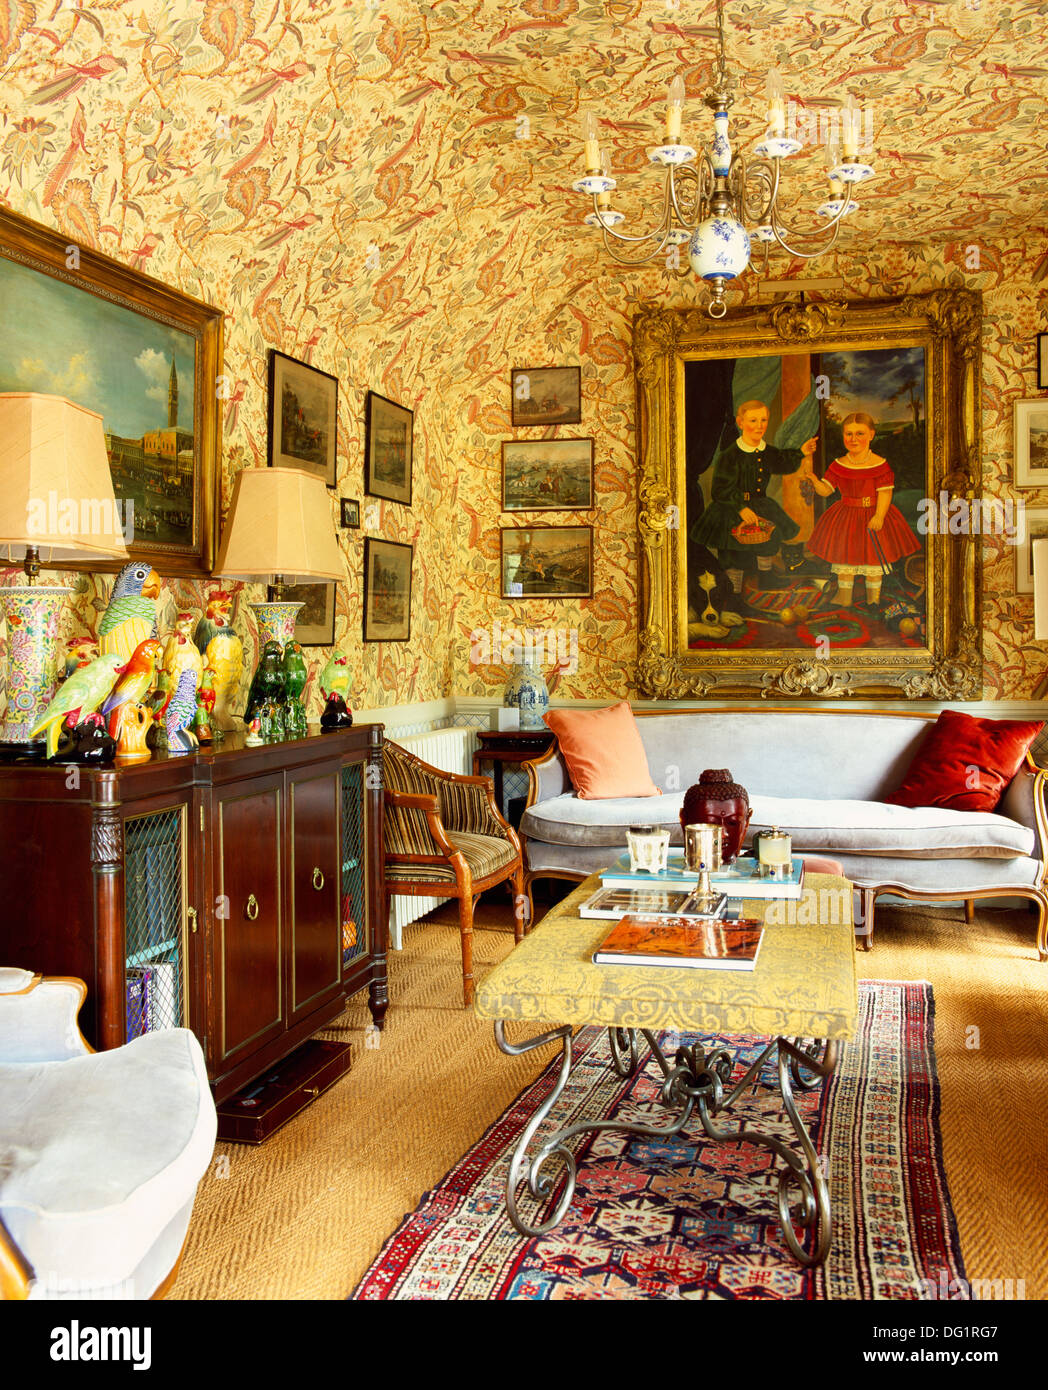 Richly patterned wallpaper on walls and ceiling in old-fashioned ...